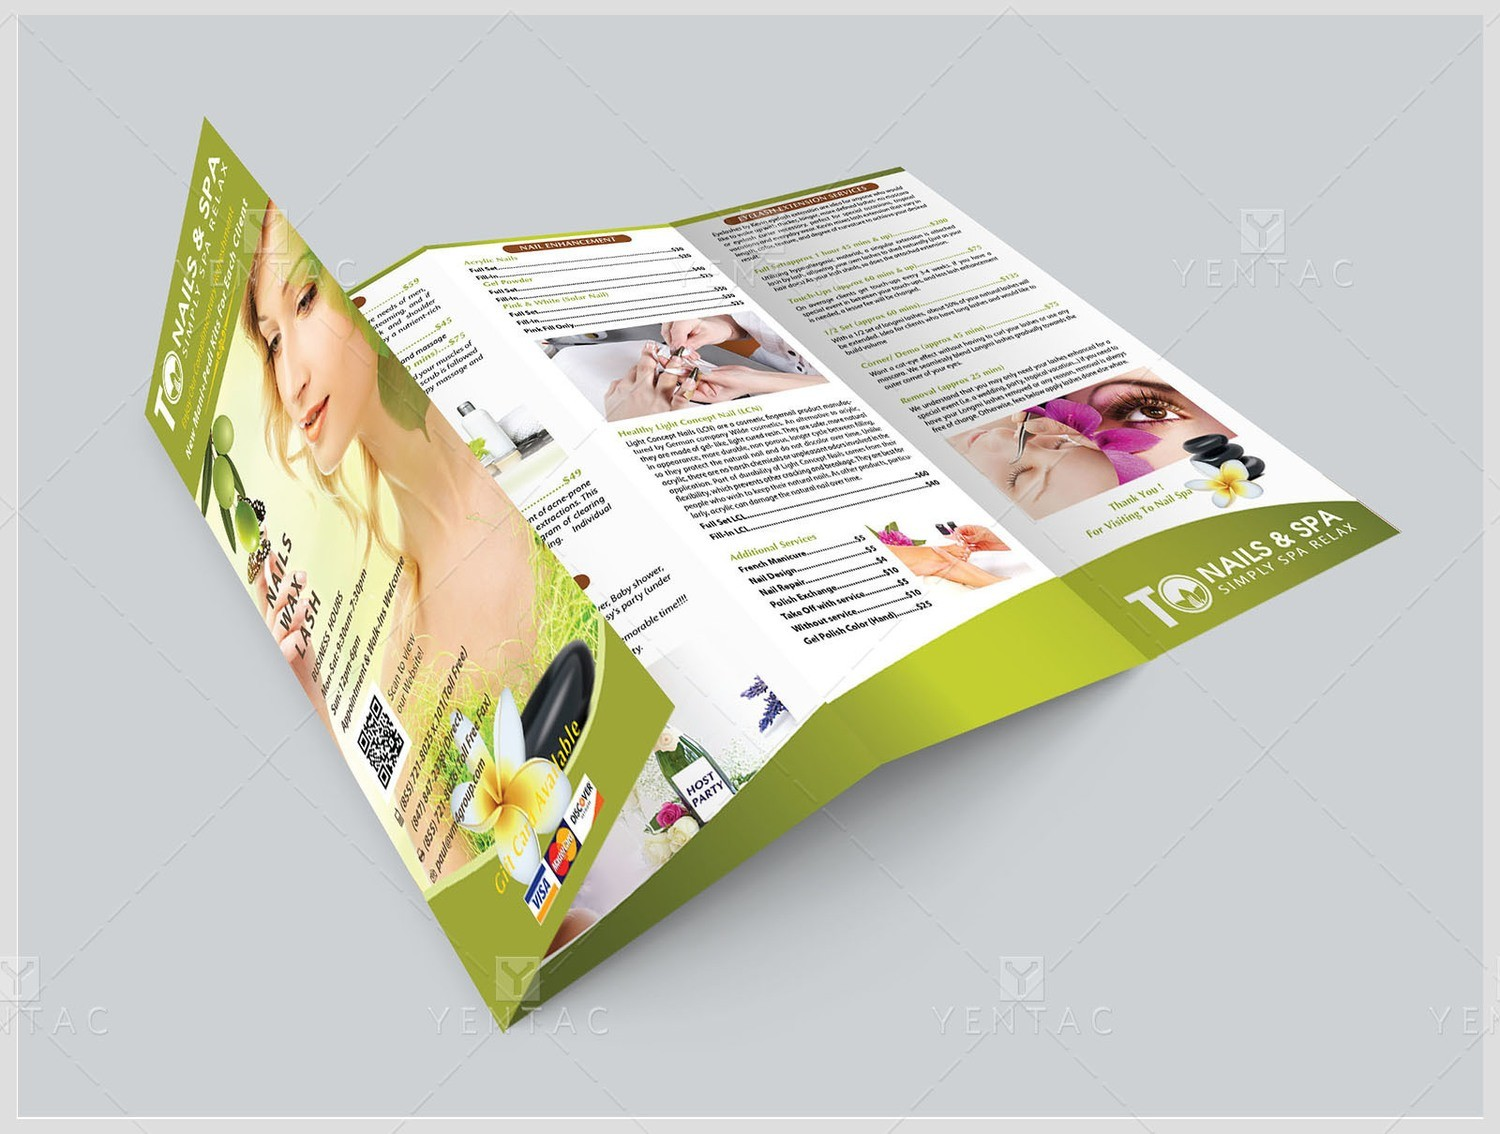 04 - Menu-Take-Out - 8.5x14 with Four Fold (Accordion Fold) TO Brand Franchise ClientID #3011 Salon